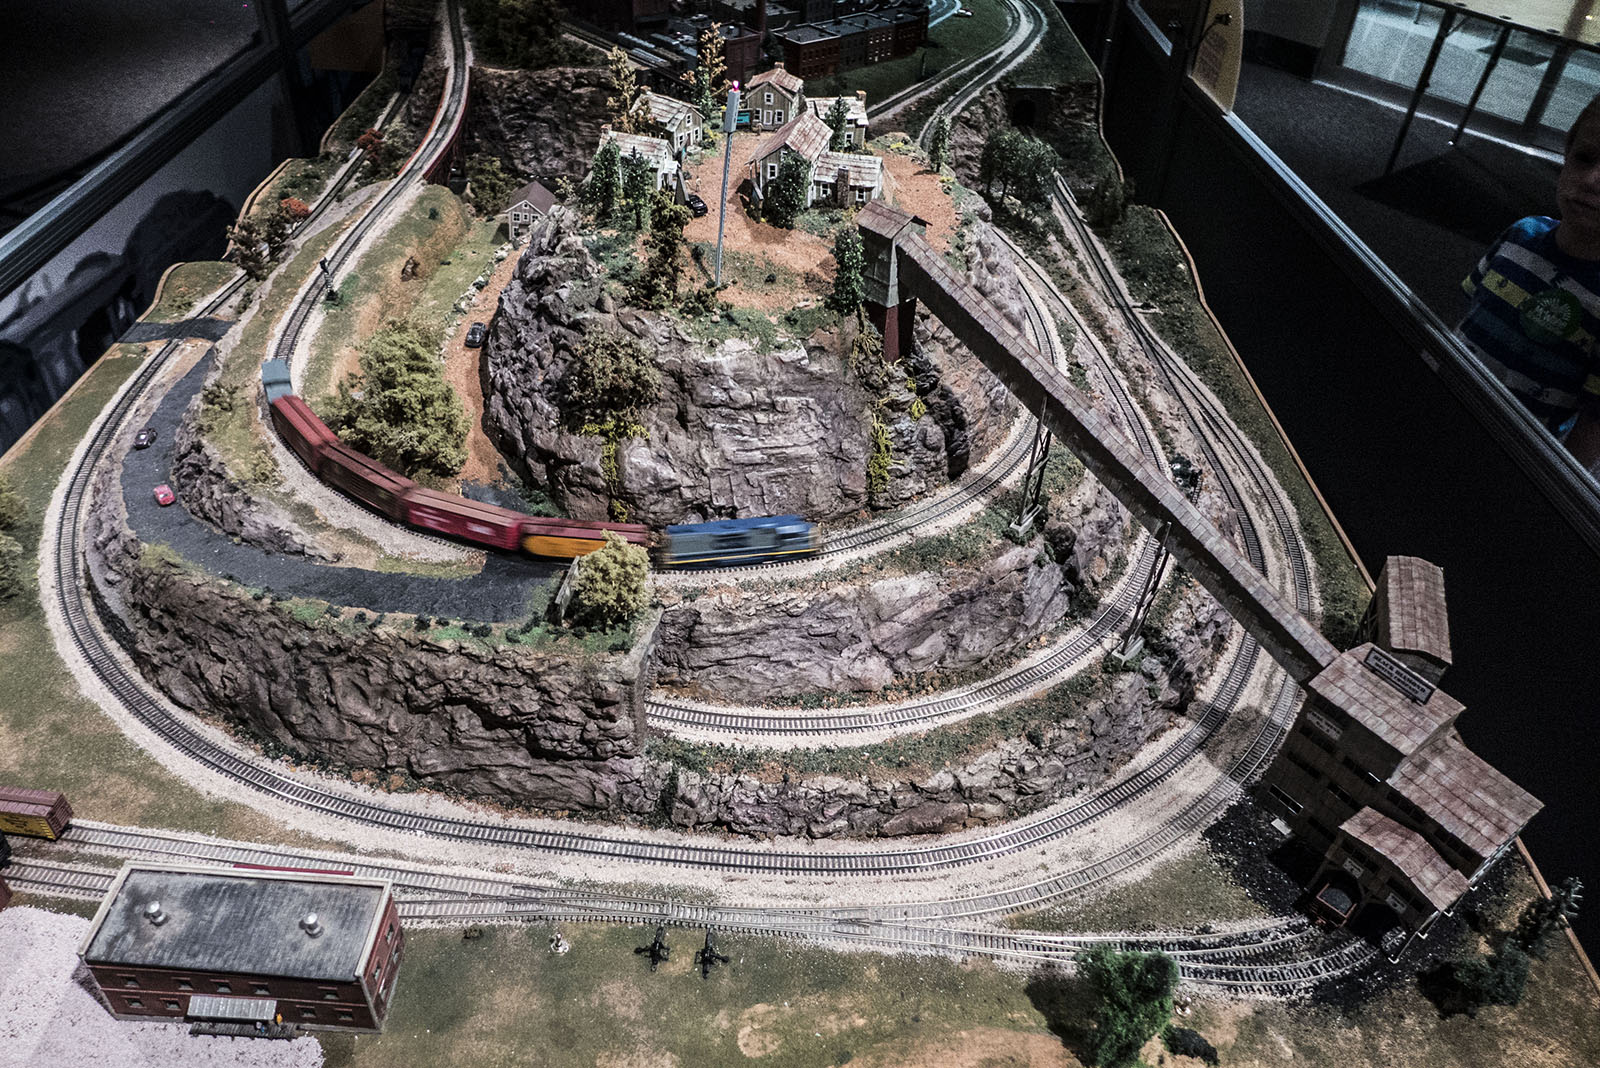 2014 magic of model trains photo gallery